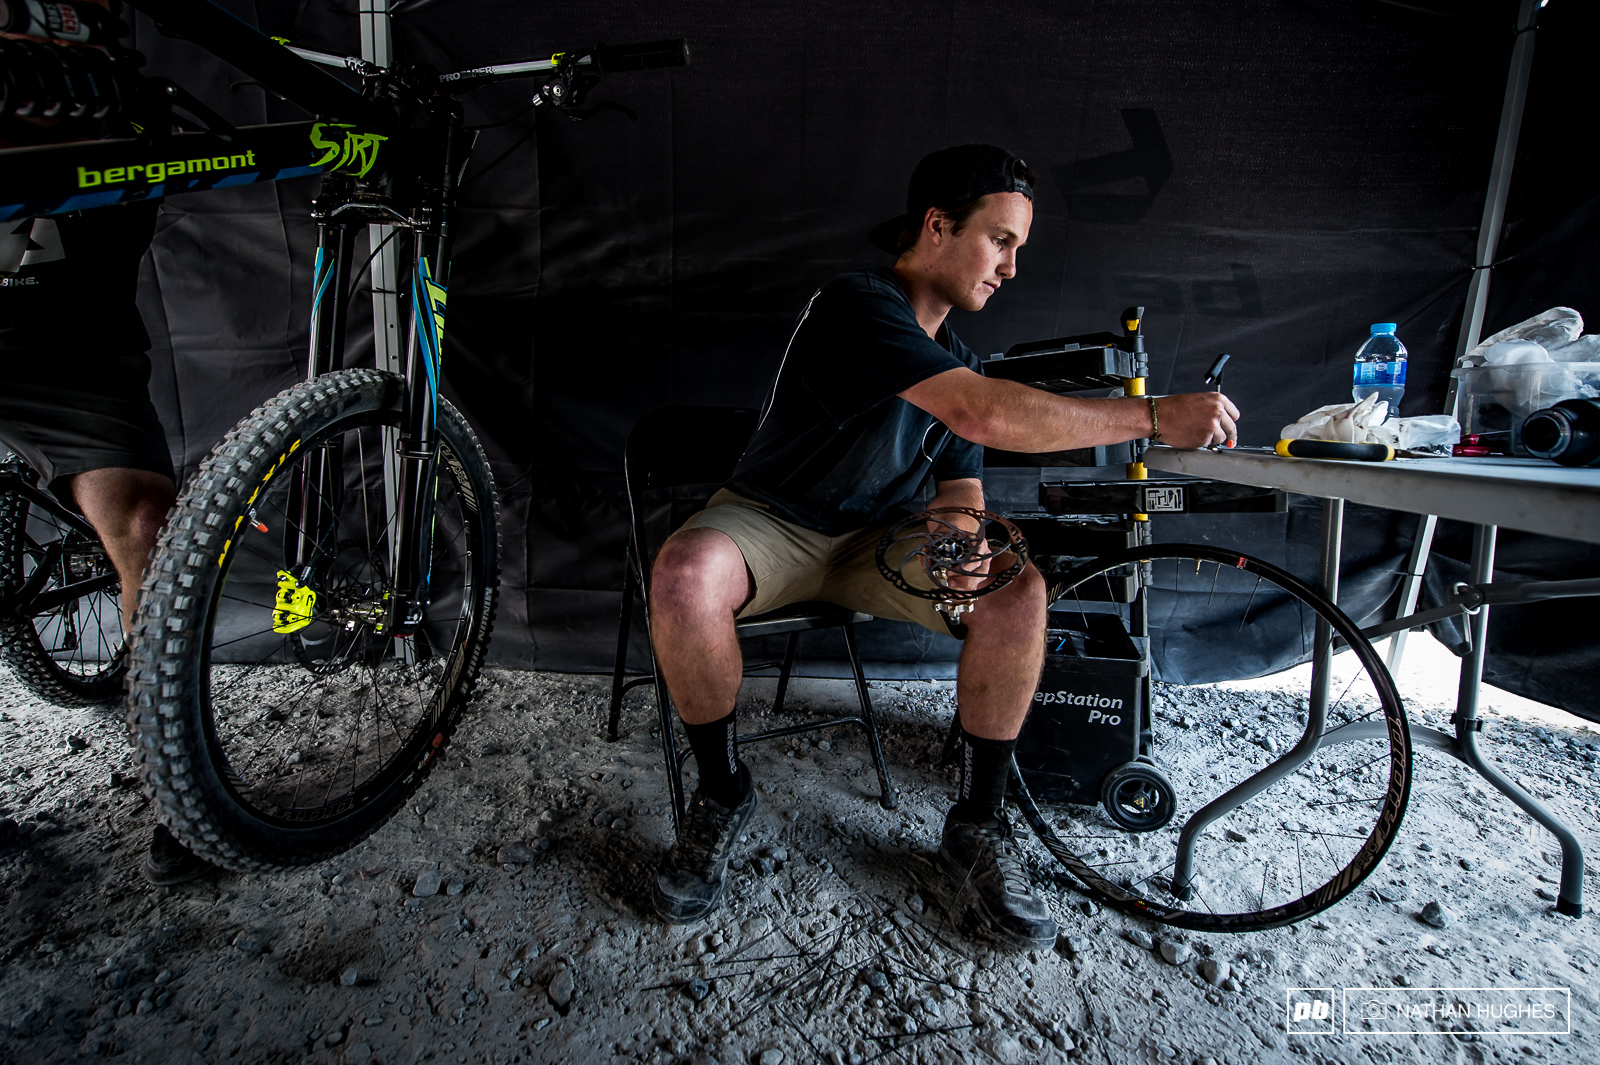 Eddy Masters mechanic Kurt giving the Bergamont some love after a wild ride.